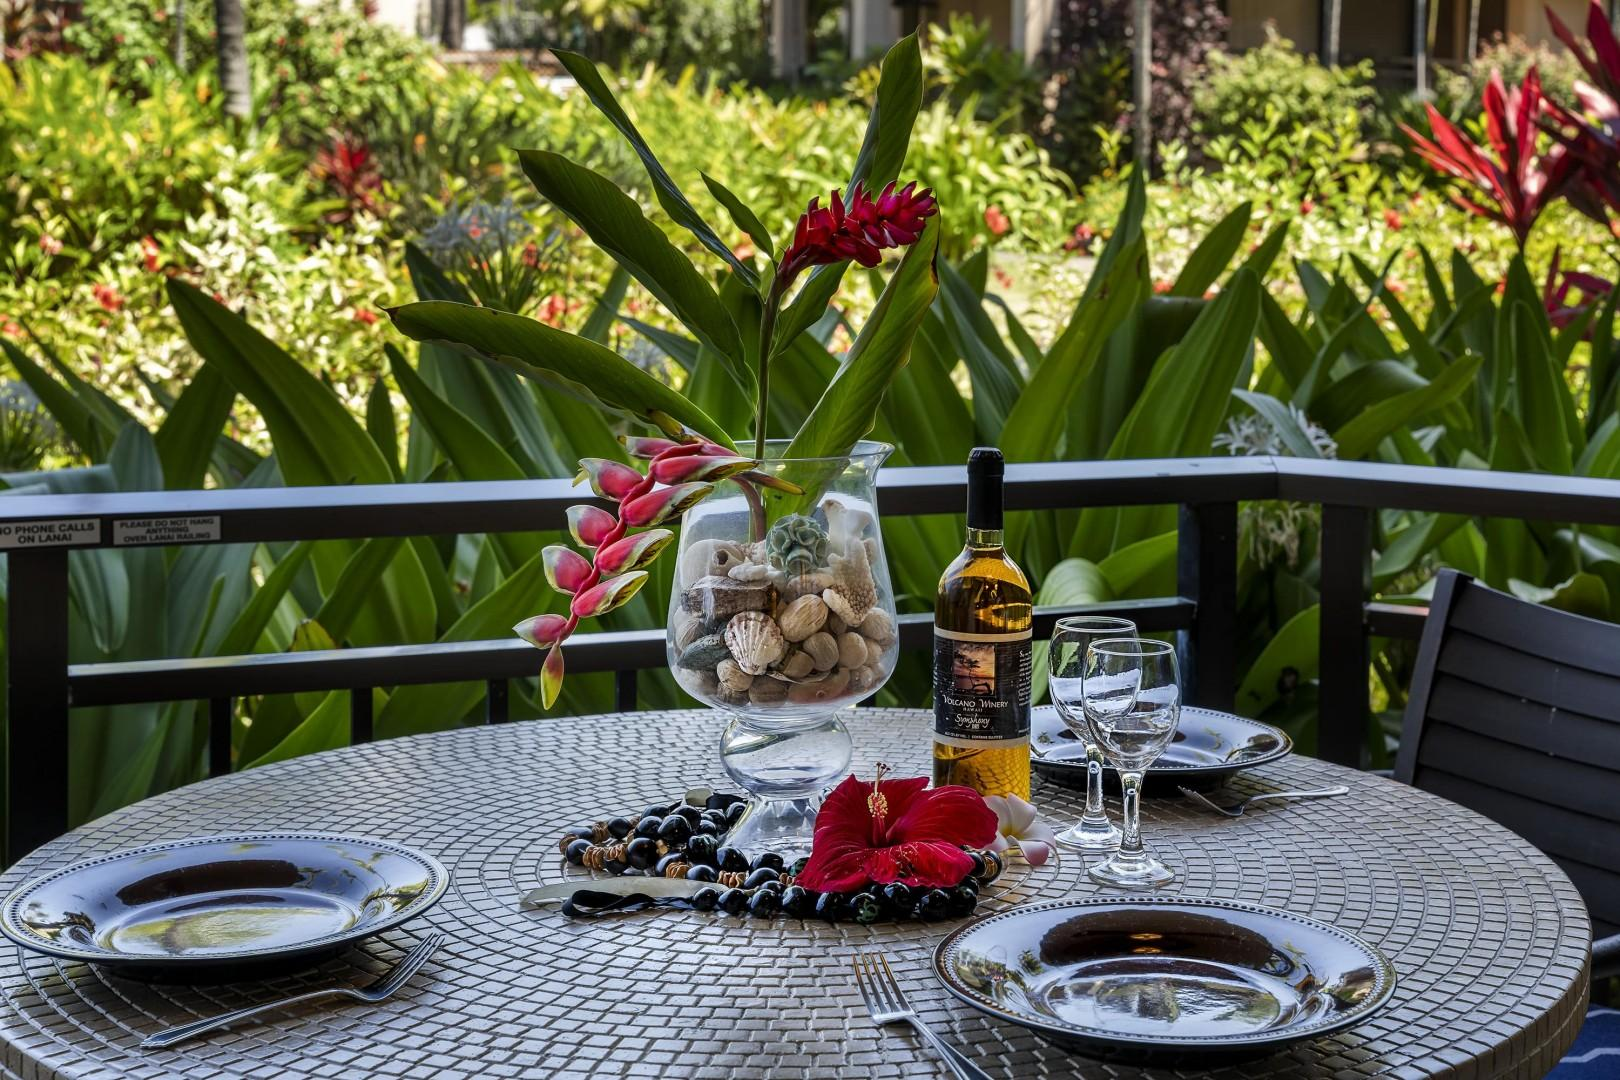 Enjoy your prepared meals on the outdoor dining set!~